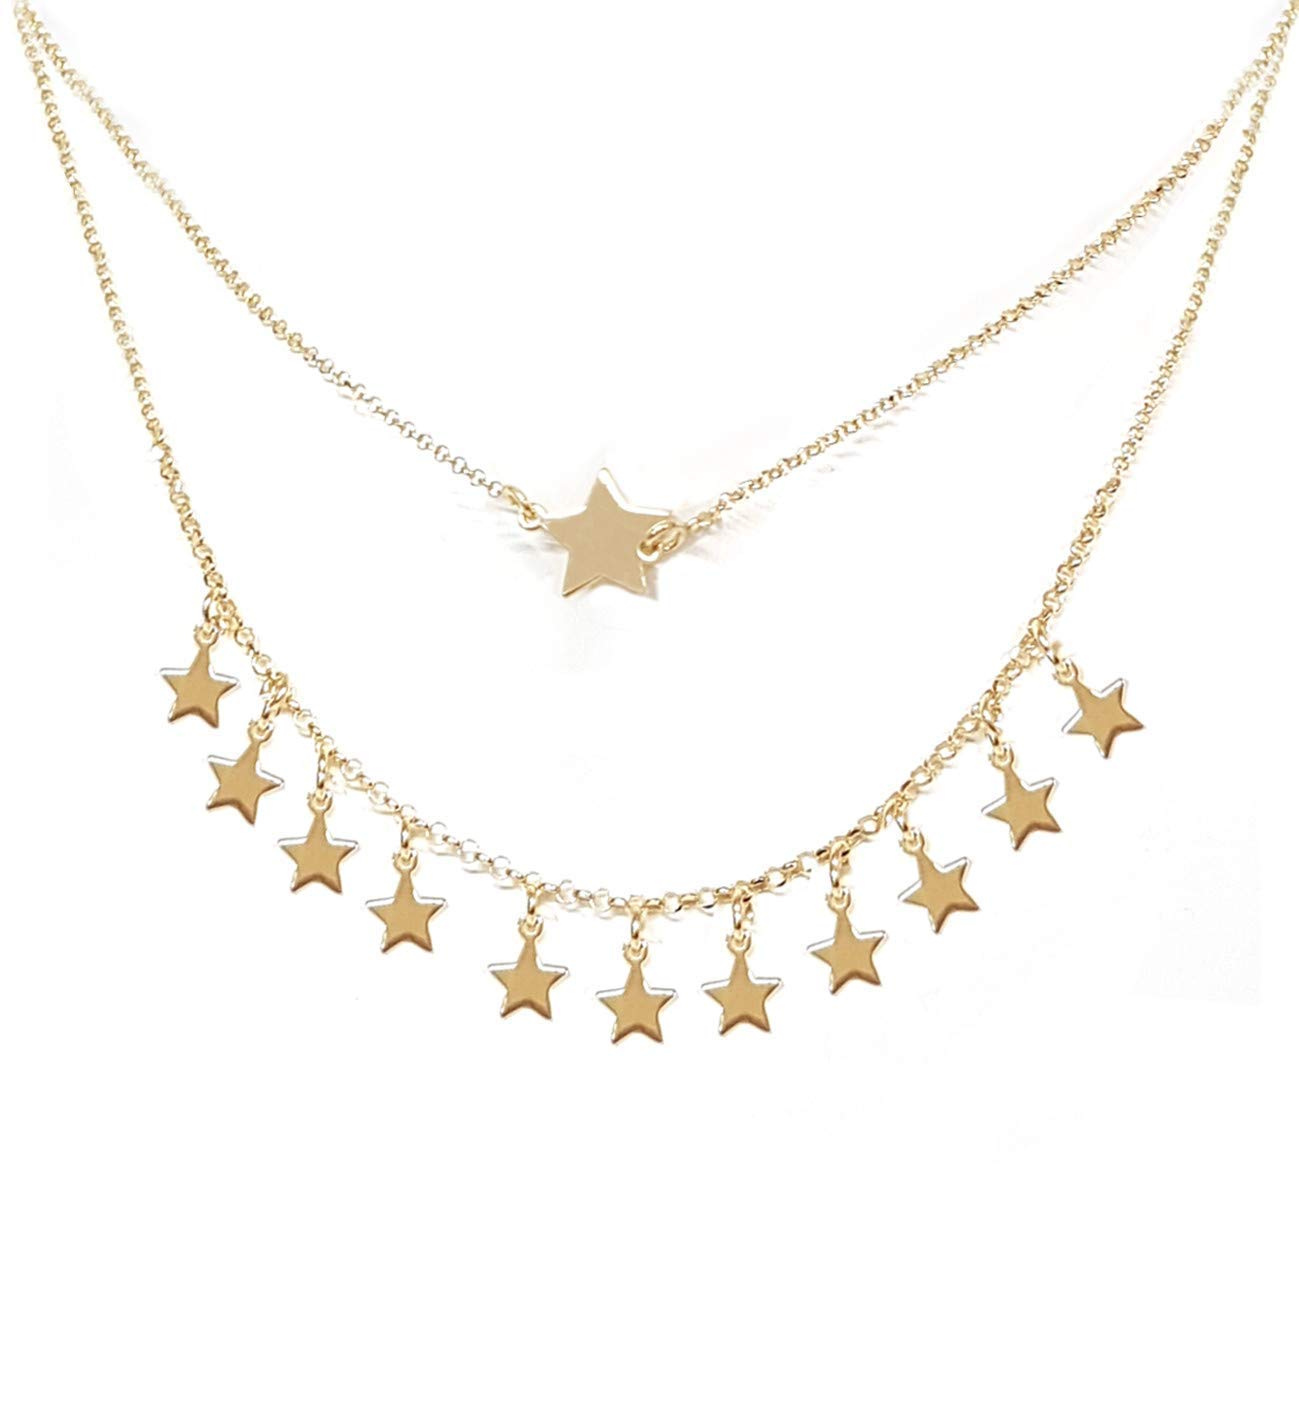 Double strand stars women's necklace, in 925 gold-plated silver - Linea  Italia, Made in Italy jewelry